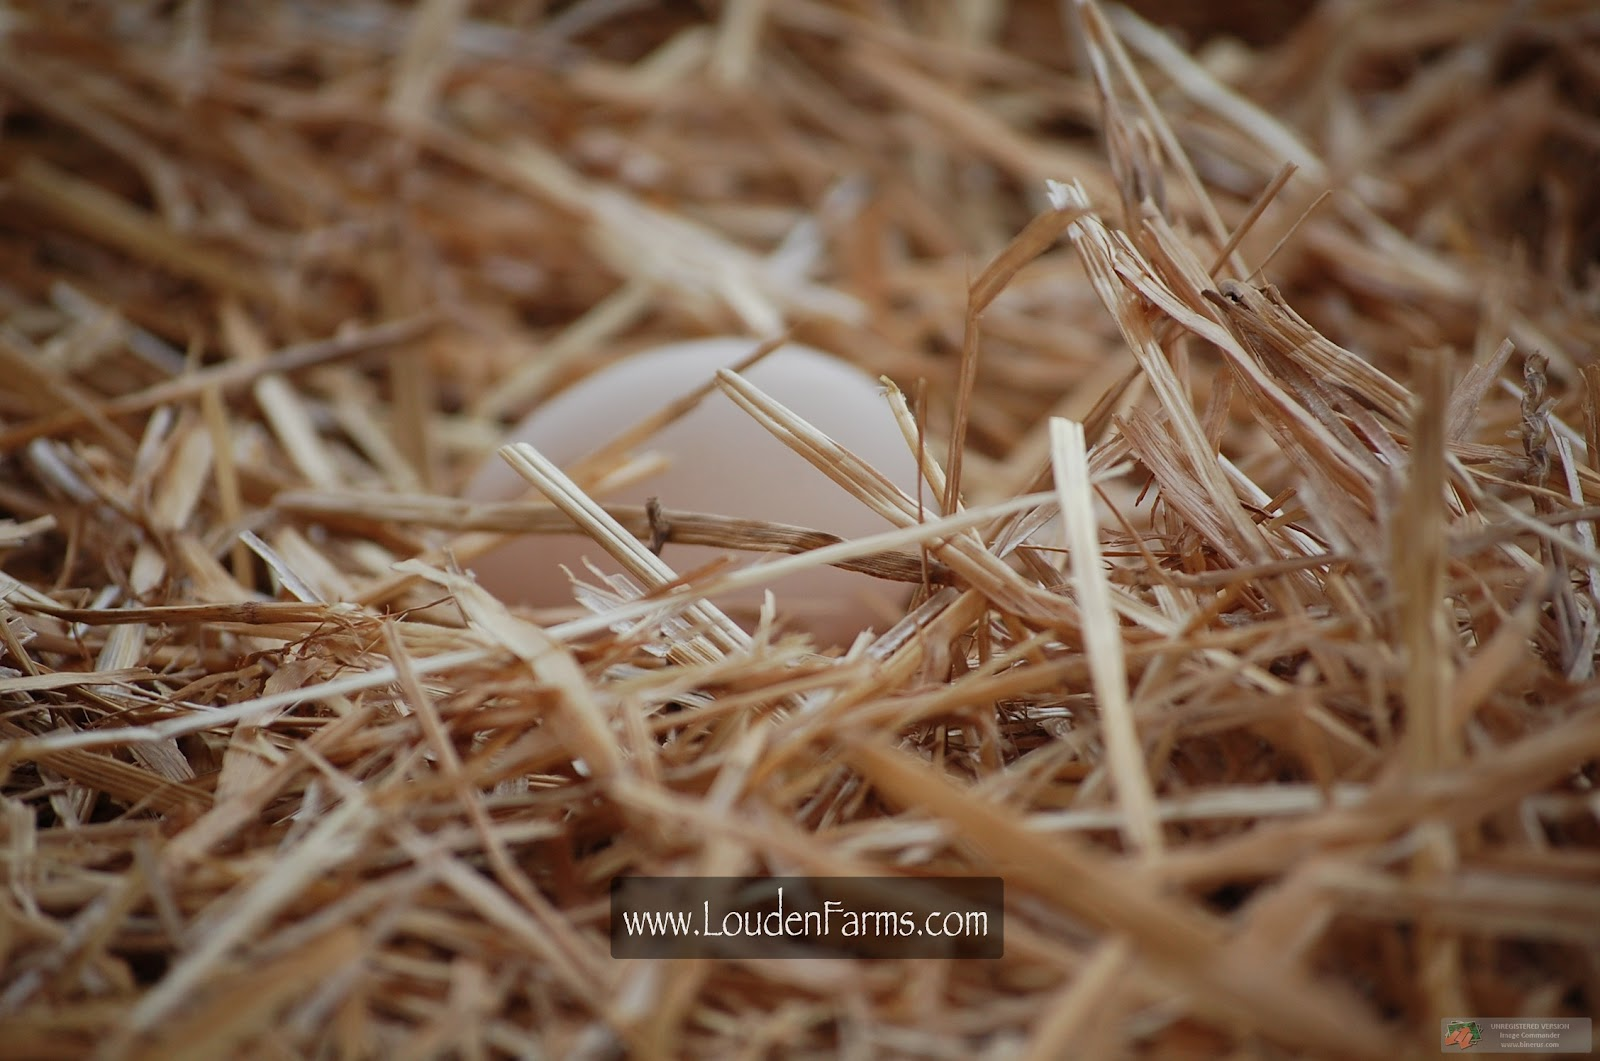 6LittleChickies - Life on Louden Farms: Peafowl 101